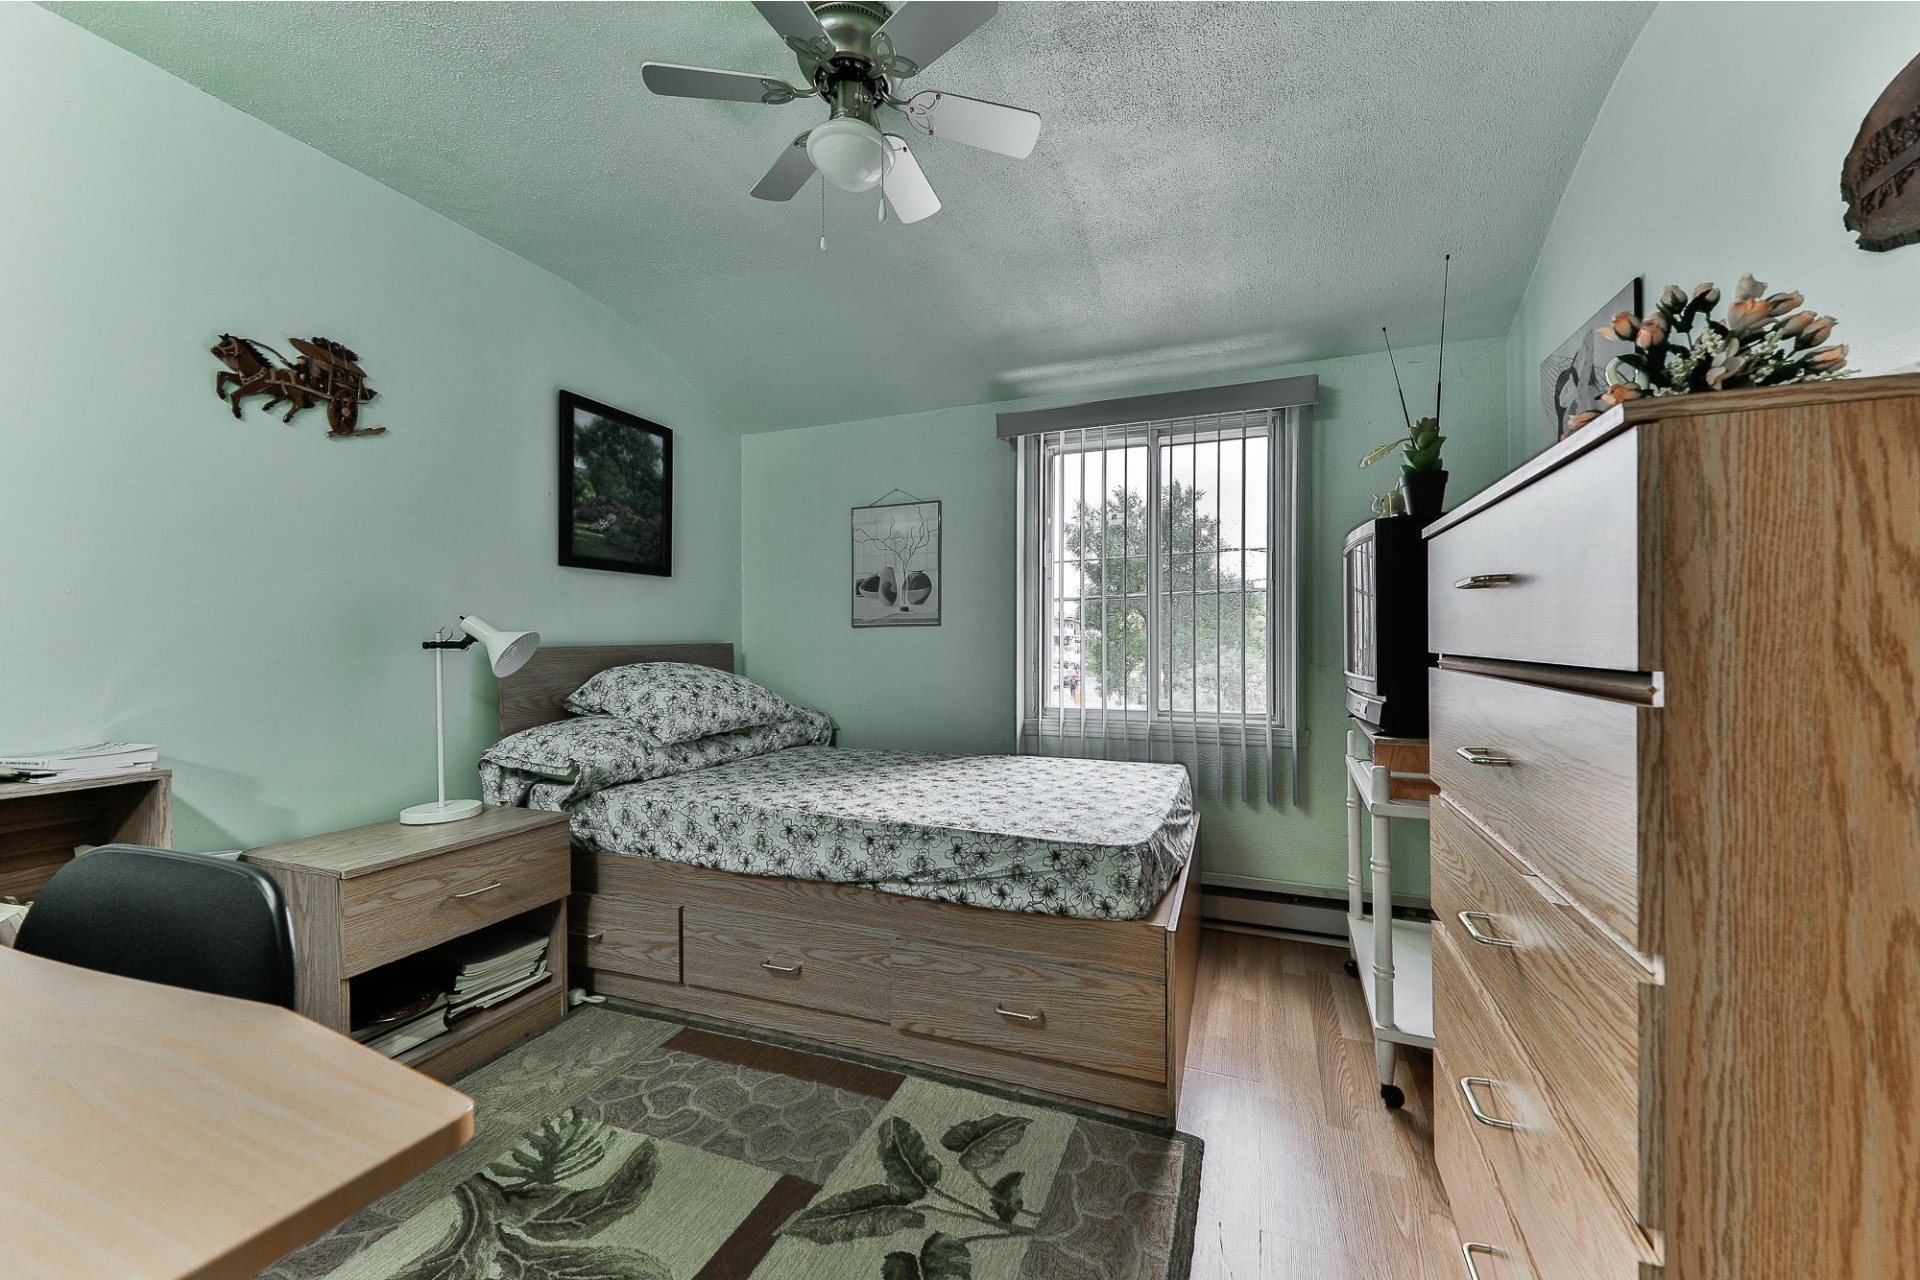 image 14 - House For sale Ahuntsic-Cartierville Montréal  - 8 rooms